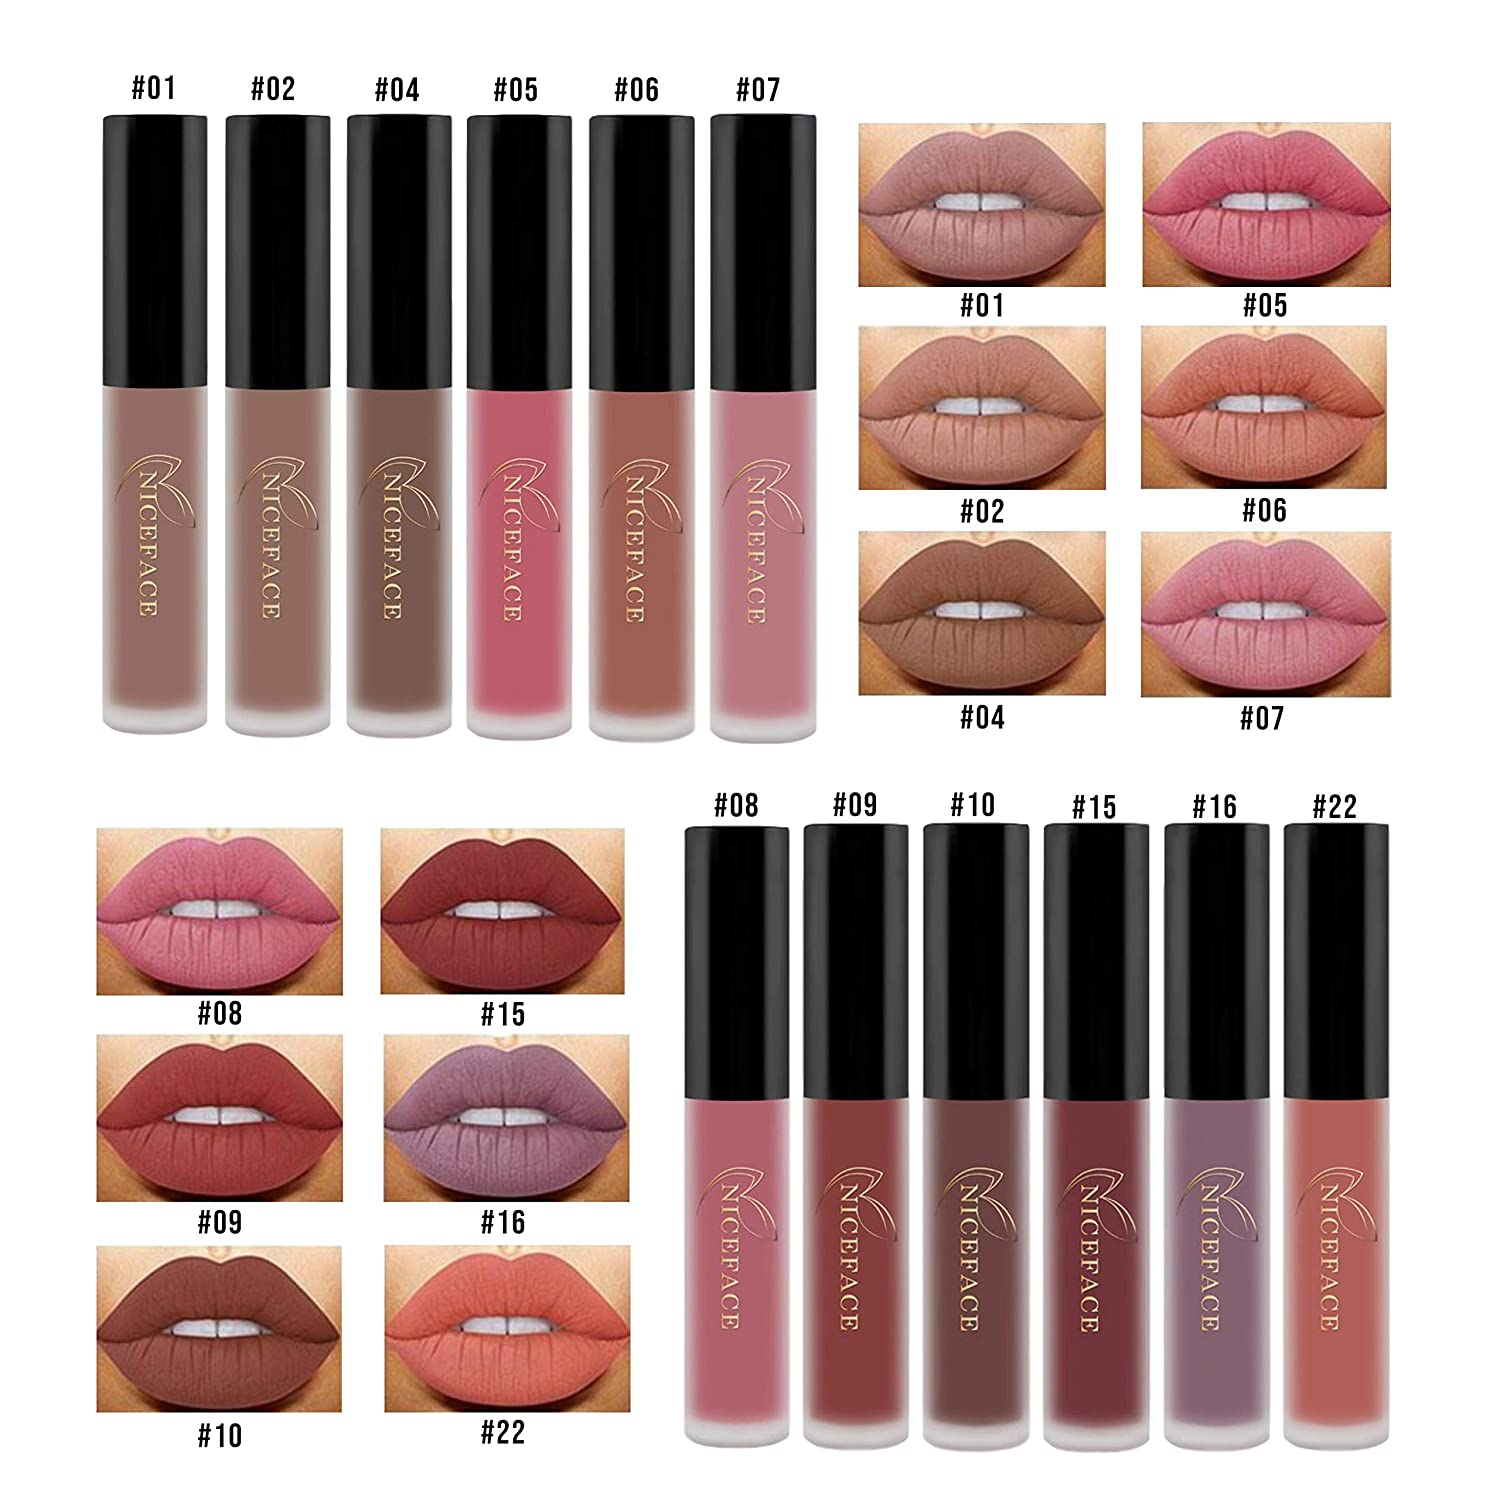 Primo Lines Lasting Hydra Matte Lip Gloss Set of 12 Shades — Beauty Makeup Cosmetics Gift for Teenage Girls — 12 x .0176oz (5g) Lip Glosses in Carrying Box Case